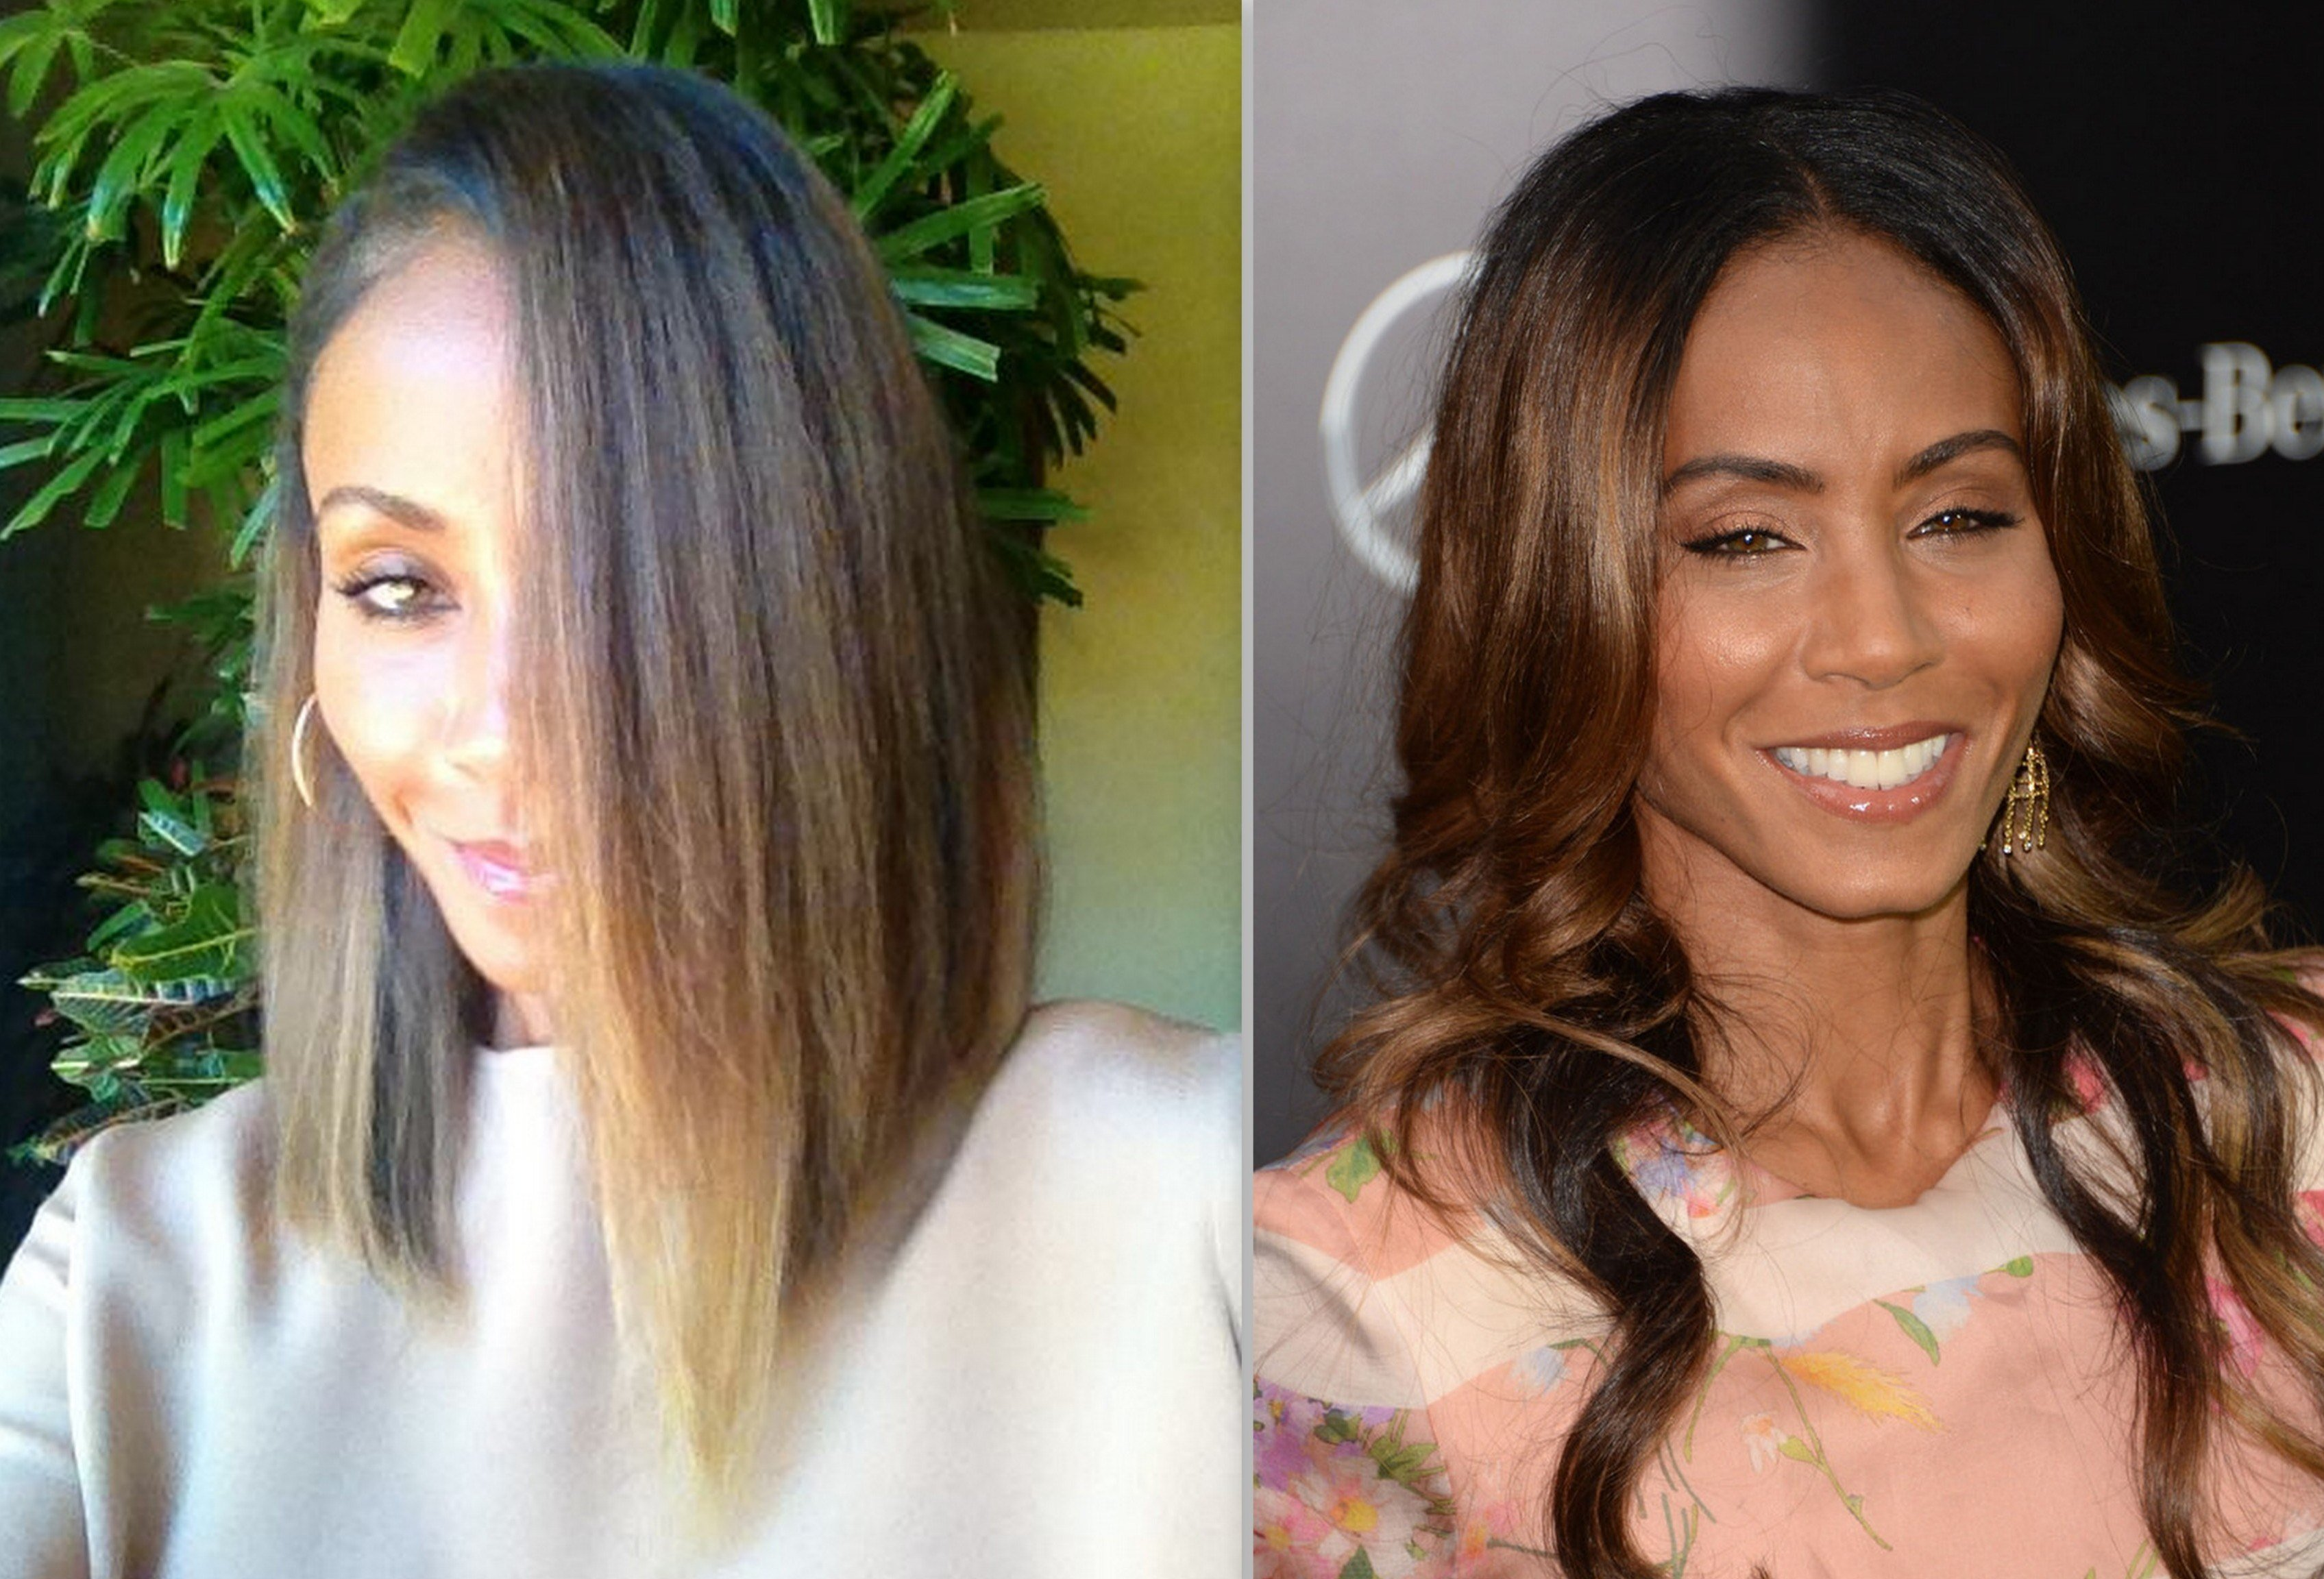 The Best Jada Pinkett Smith Lops Off Her Long Hair Stylish Eve Pictures